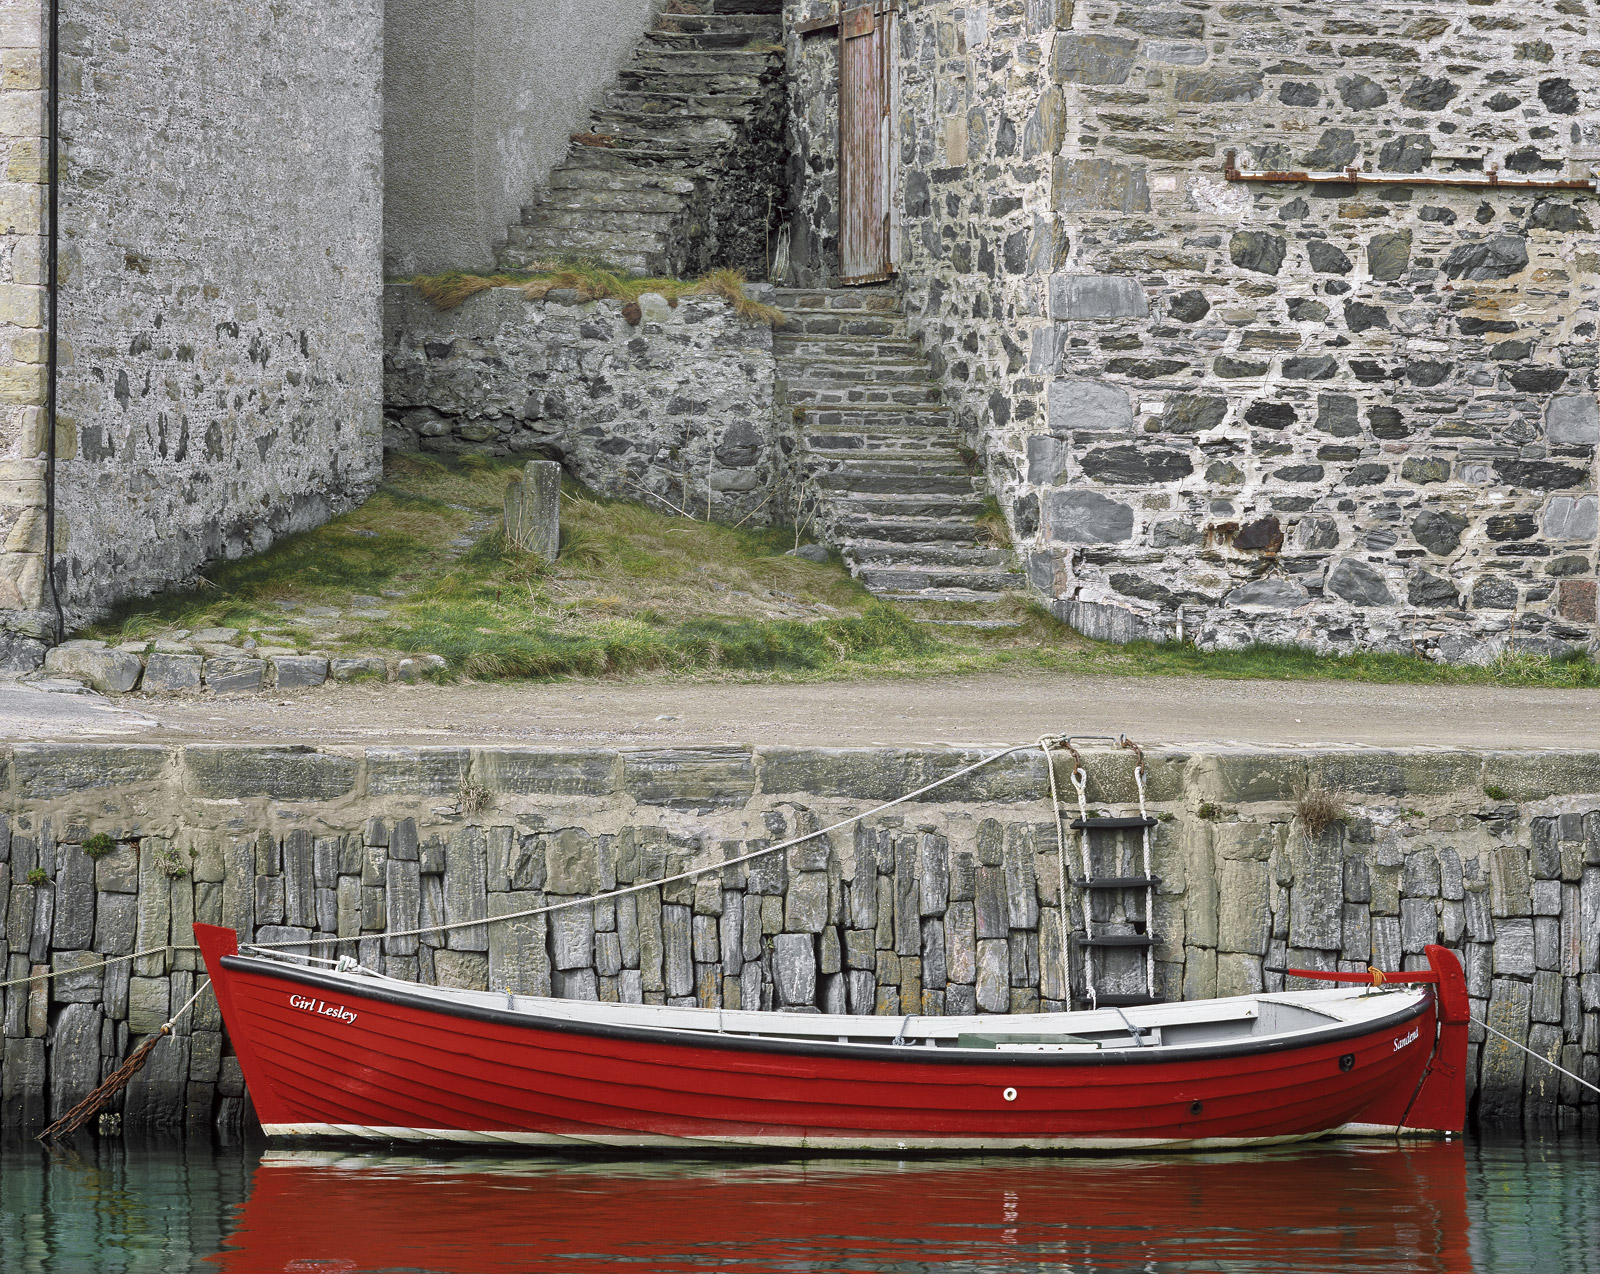 """Looking for a wee bit of inspiration my eye fell upon """"Lesley"""", a brilliant red painted boat tied up at Portsoy's quaint..."""